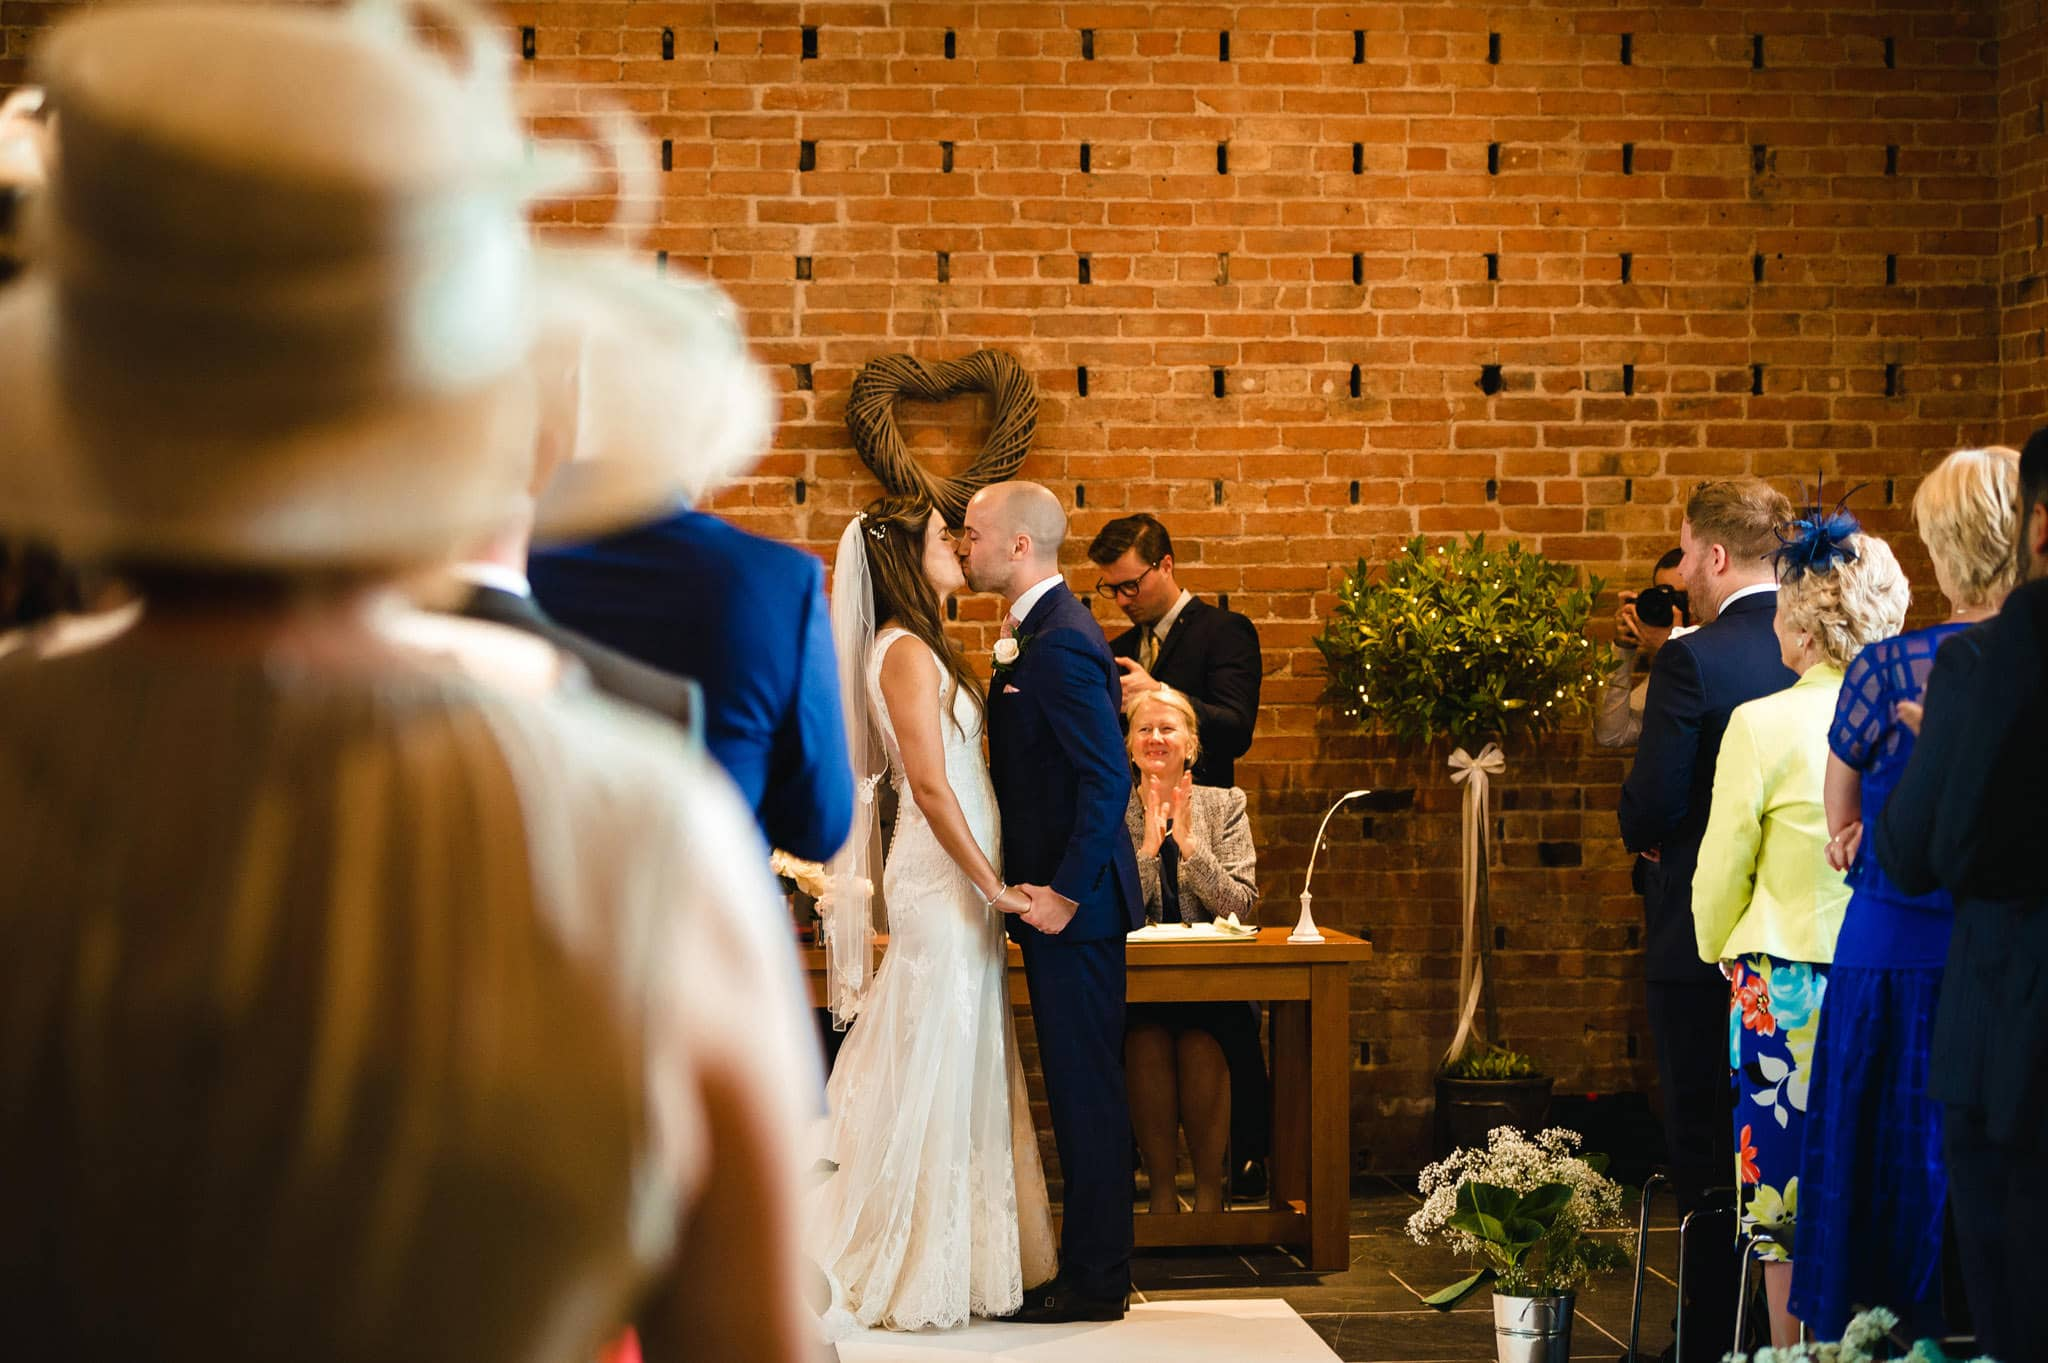 Wedding at Redhouse Barn in Stoke Prior, Worcestershire 66